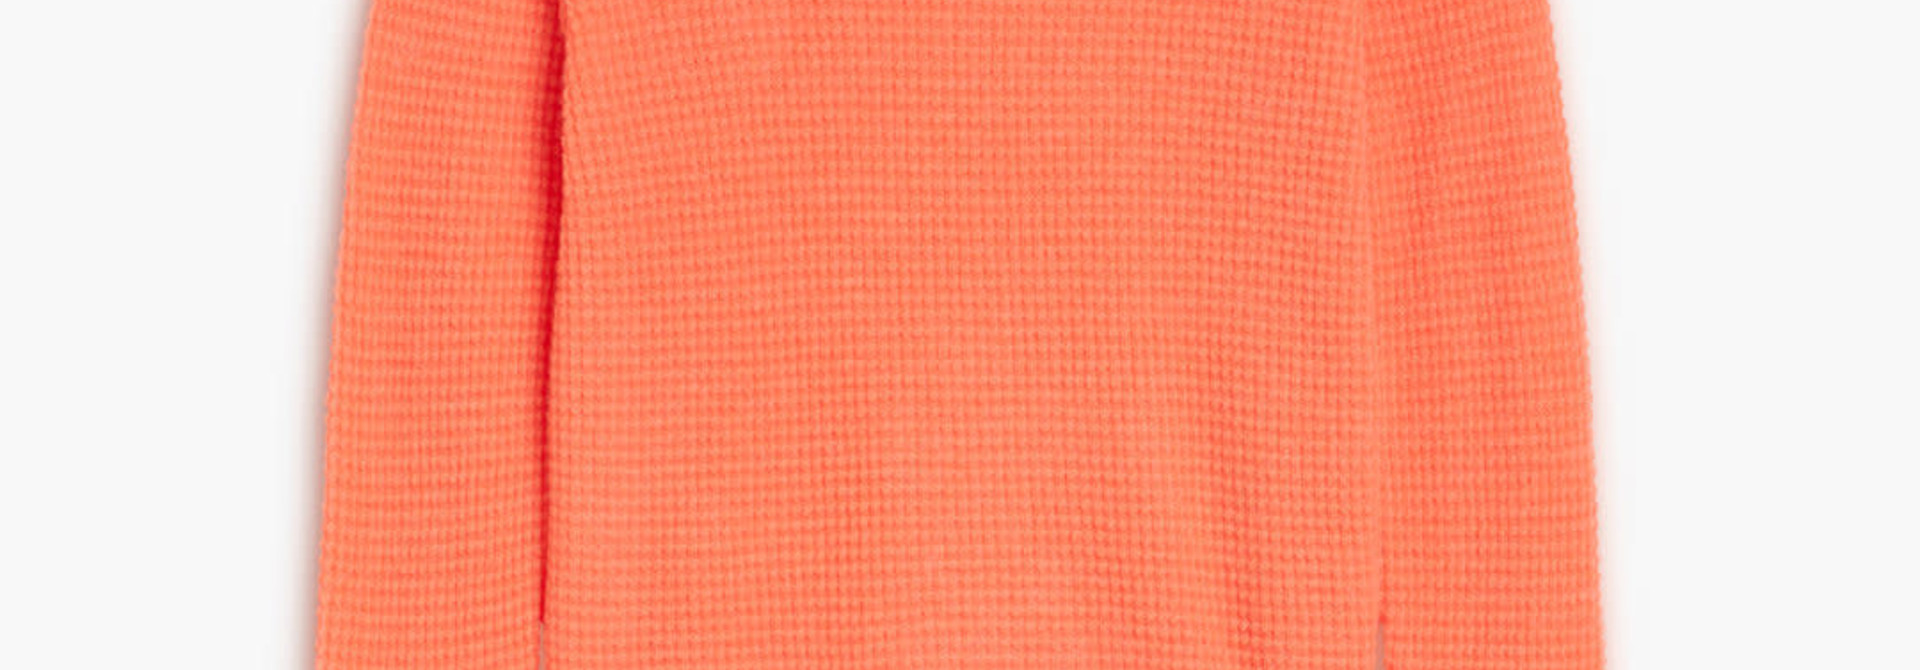 Knit strong coral